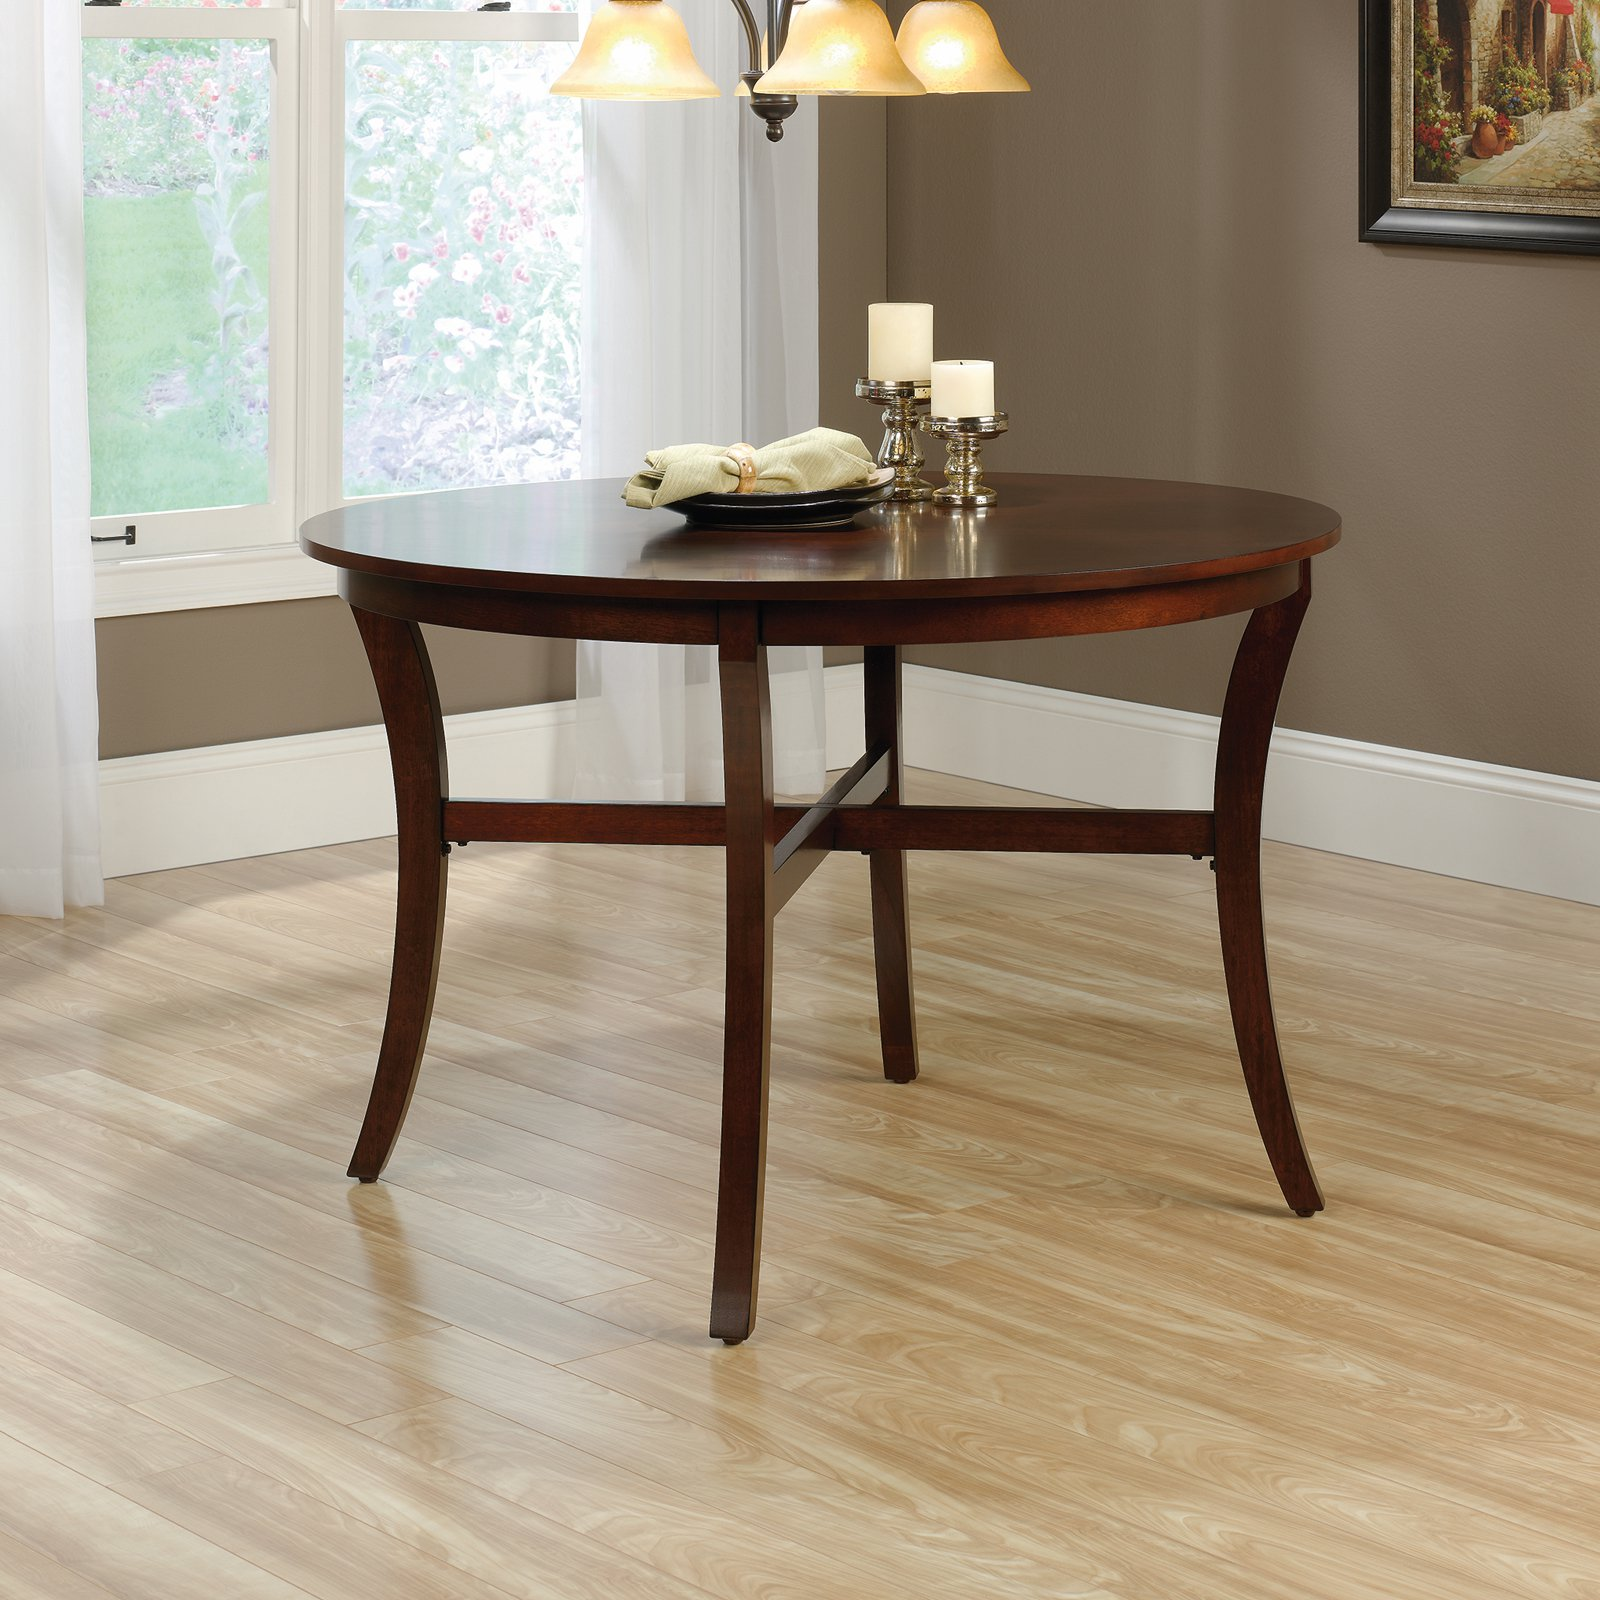 Sauder Palladia Round Dinette Table, Select Cherry Finish